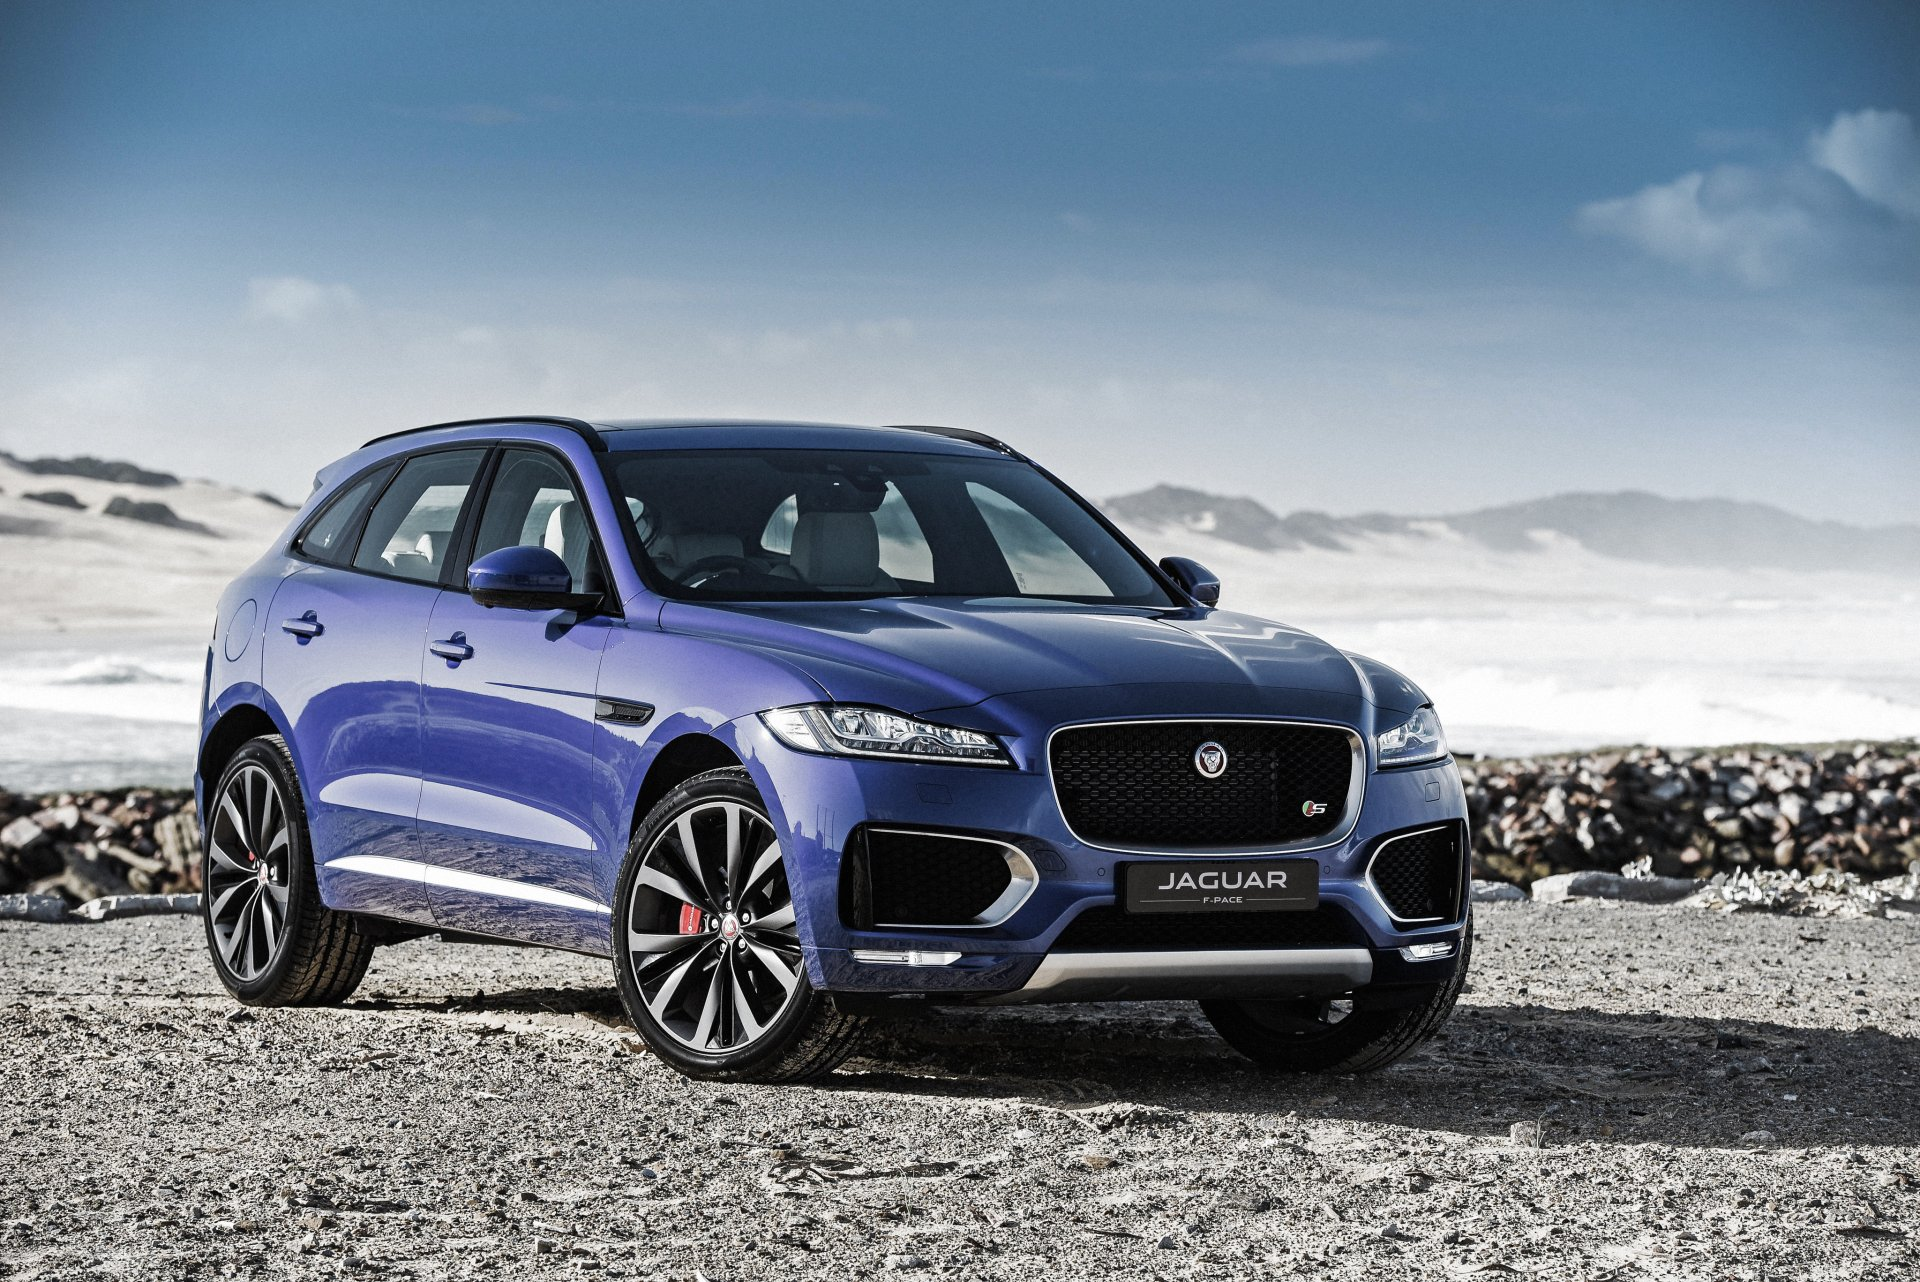 31 Jaguar F Pace Hd Wallpapers Background Images Wallpaper Abyss